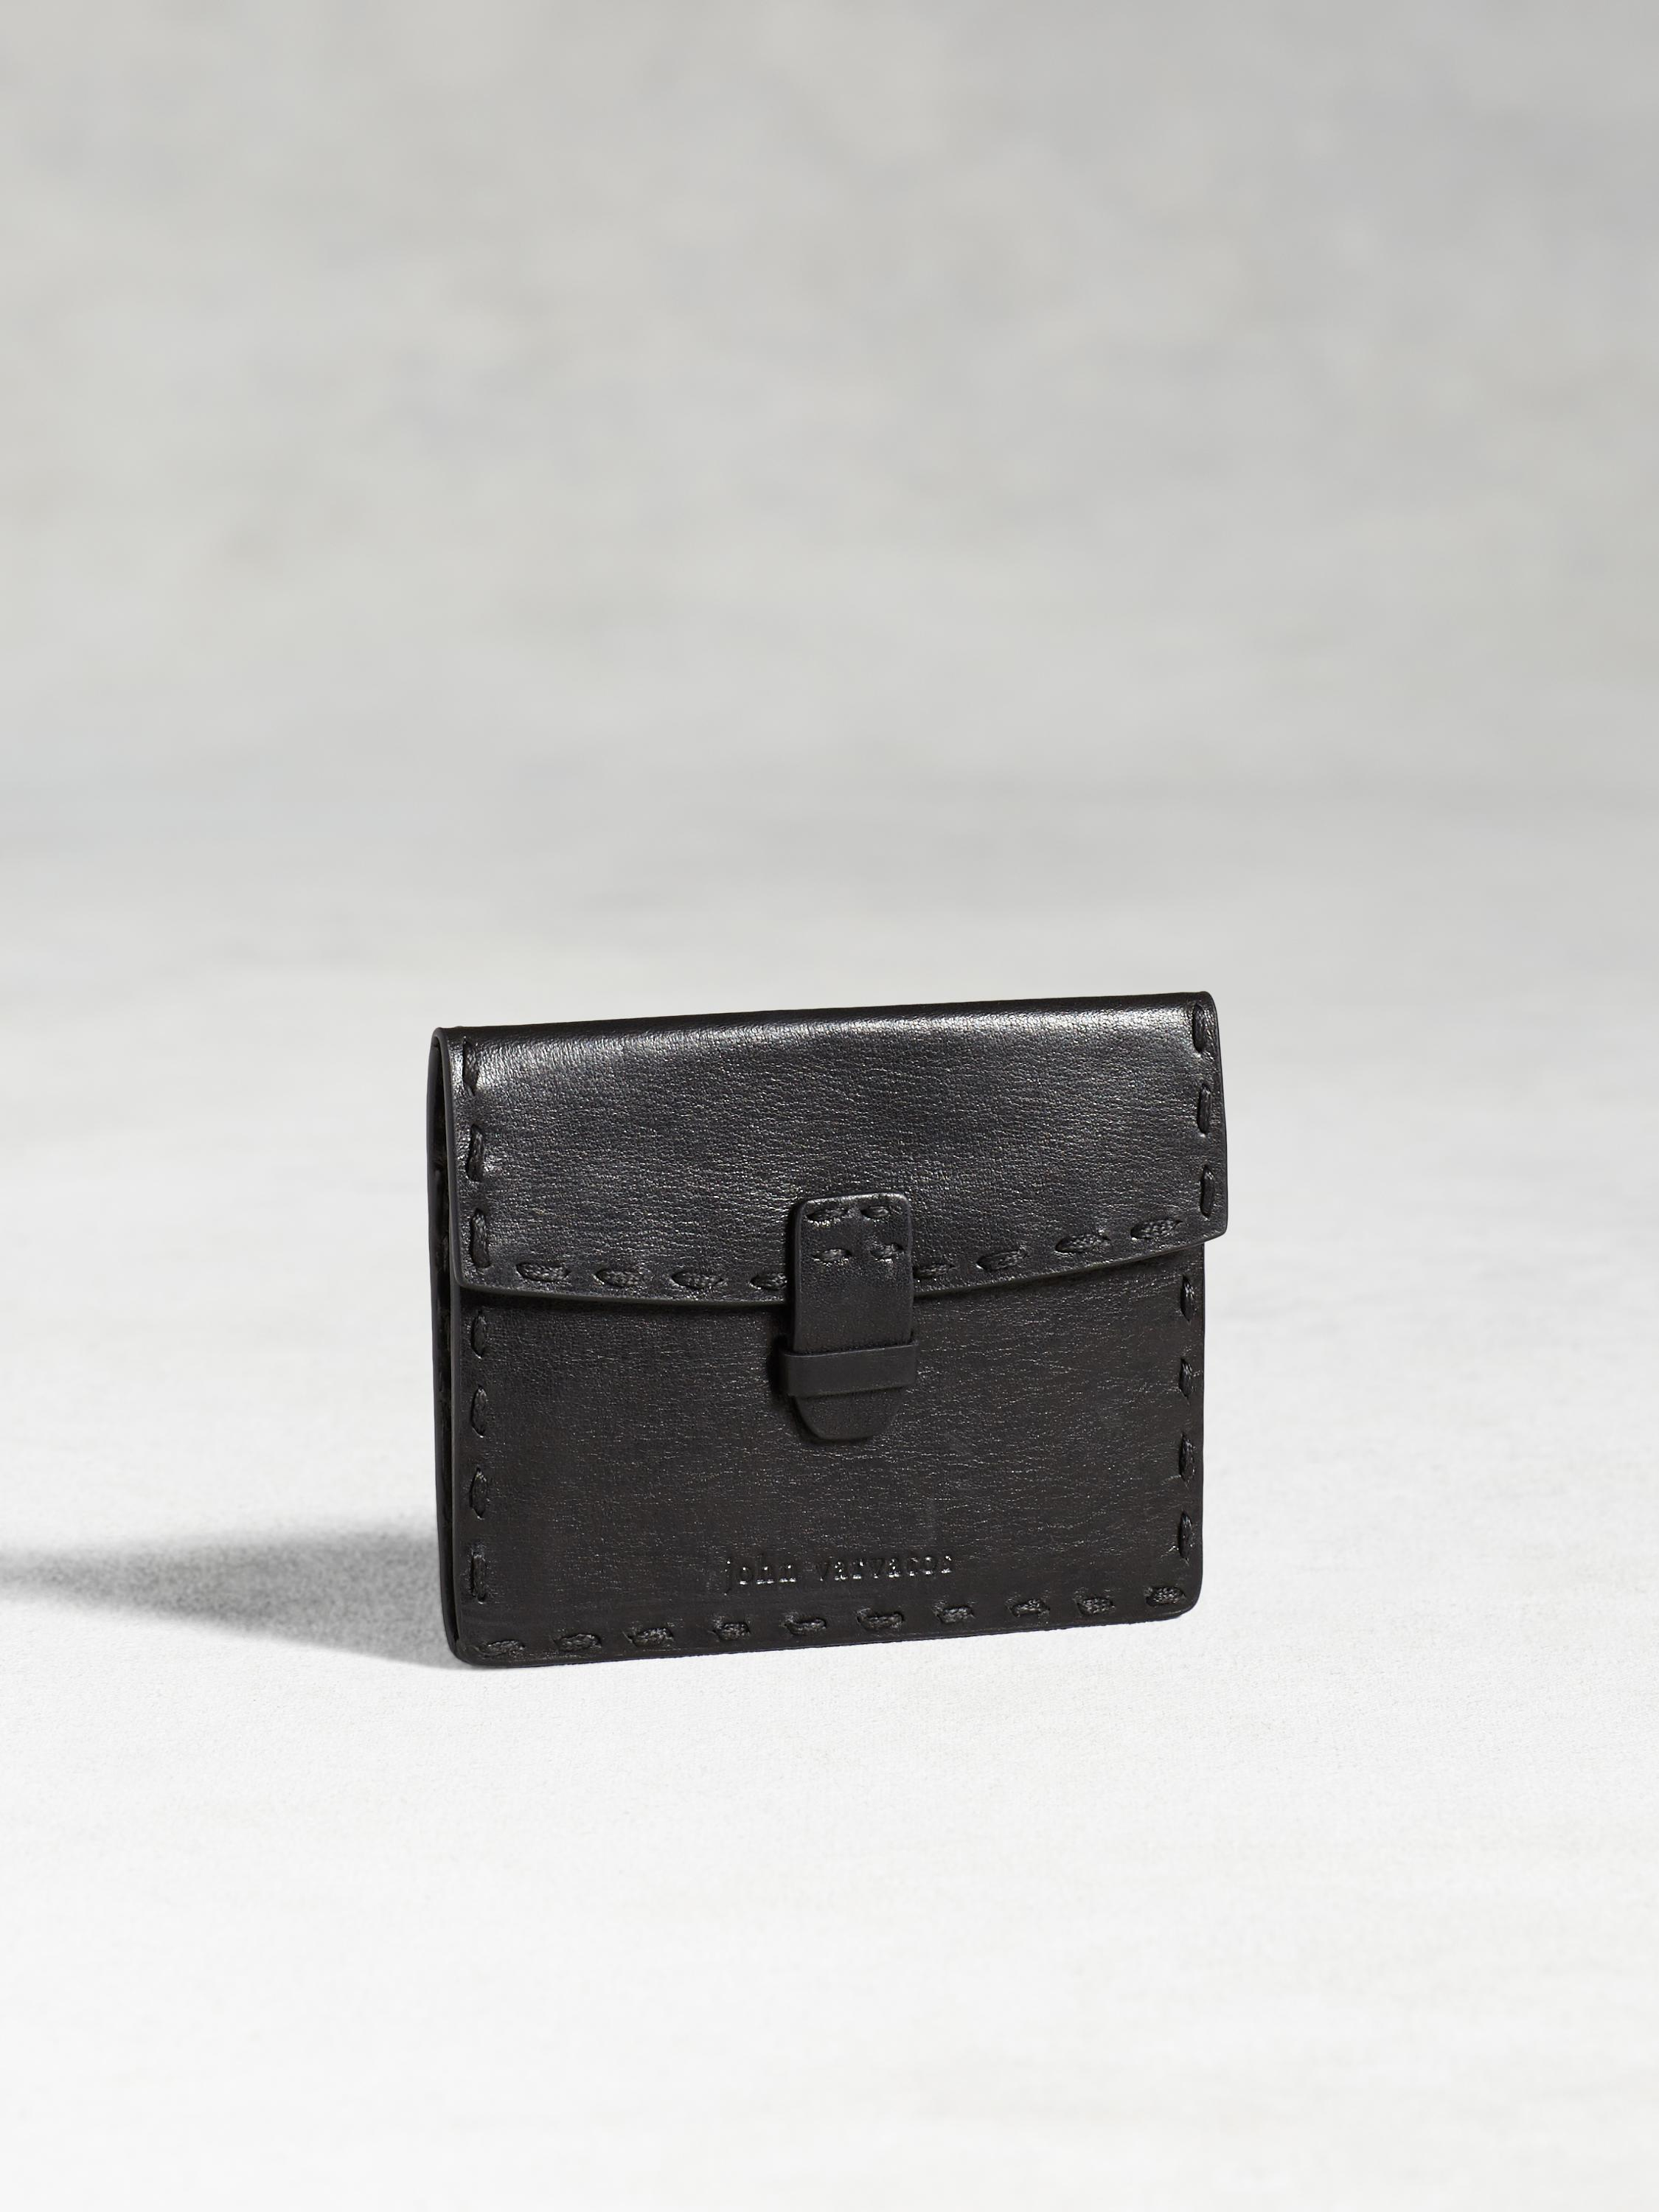 Sequoia Card Case With Coin Pouch